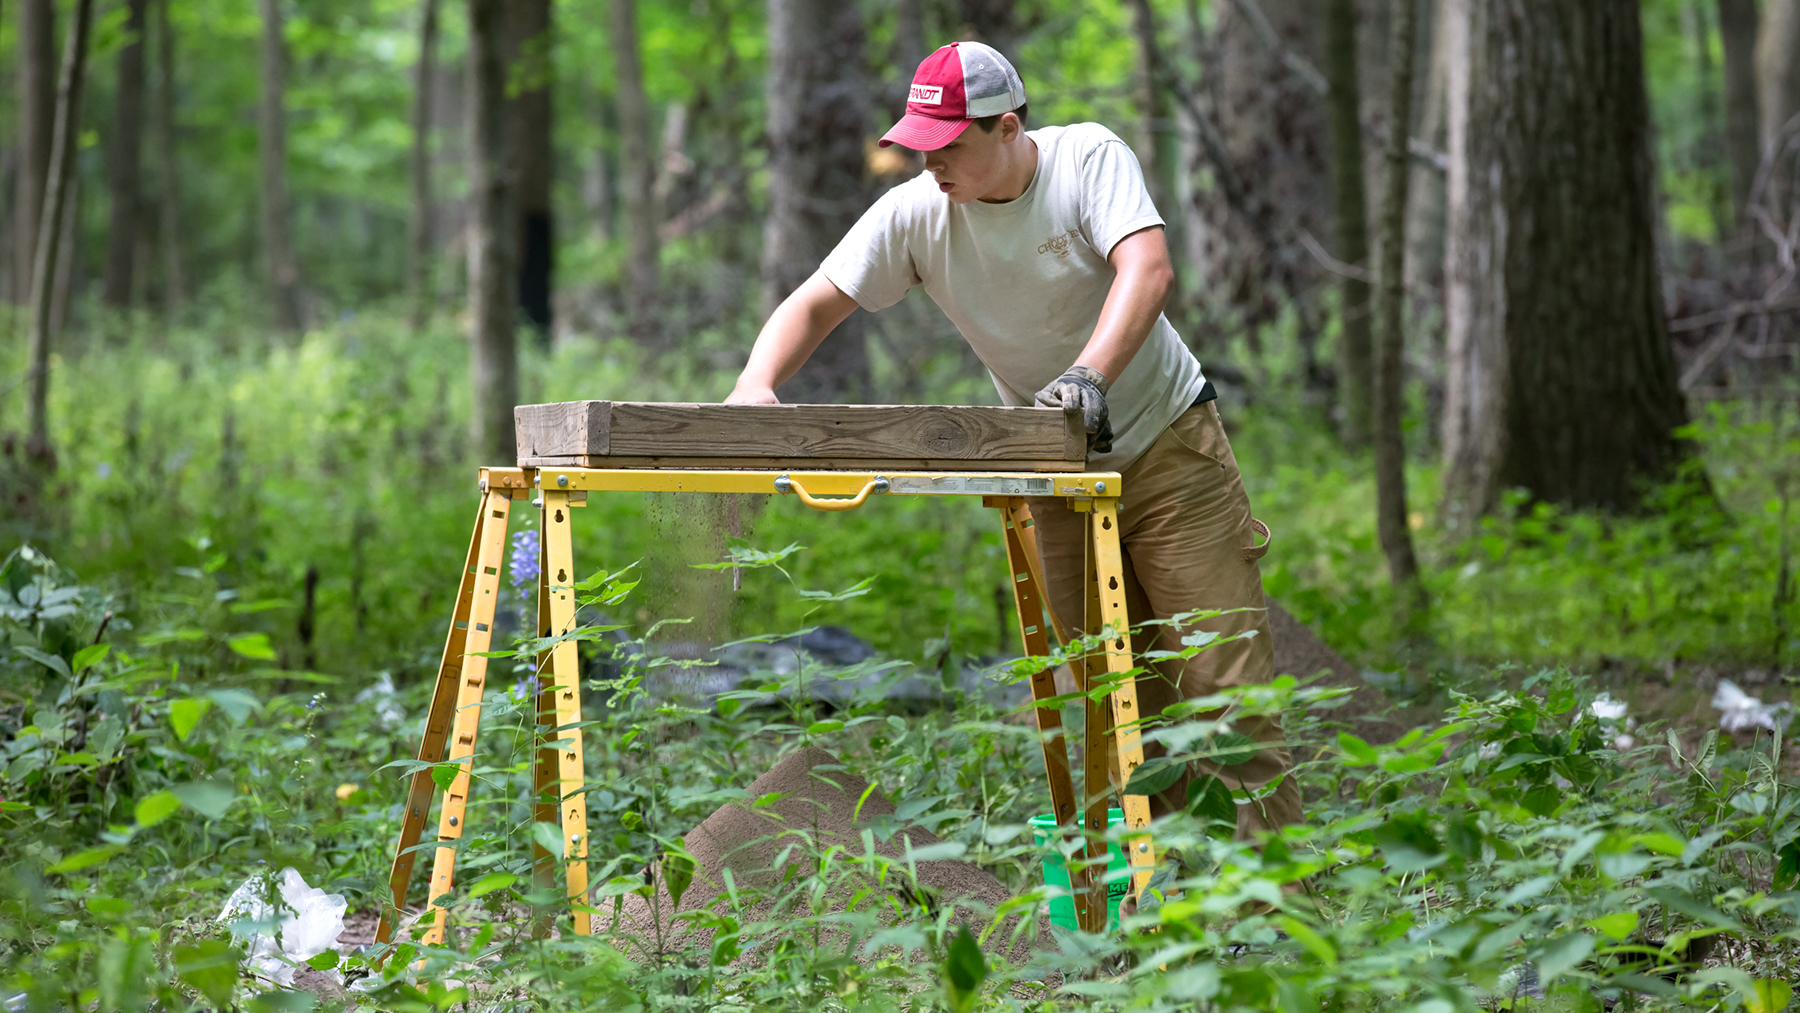 Parkland College student Kaleb Cotter sifts through materials uncovered in excavations of native mounds in Robert Allerton Park. Photo by L. B. Stauffer